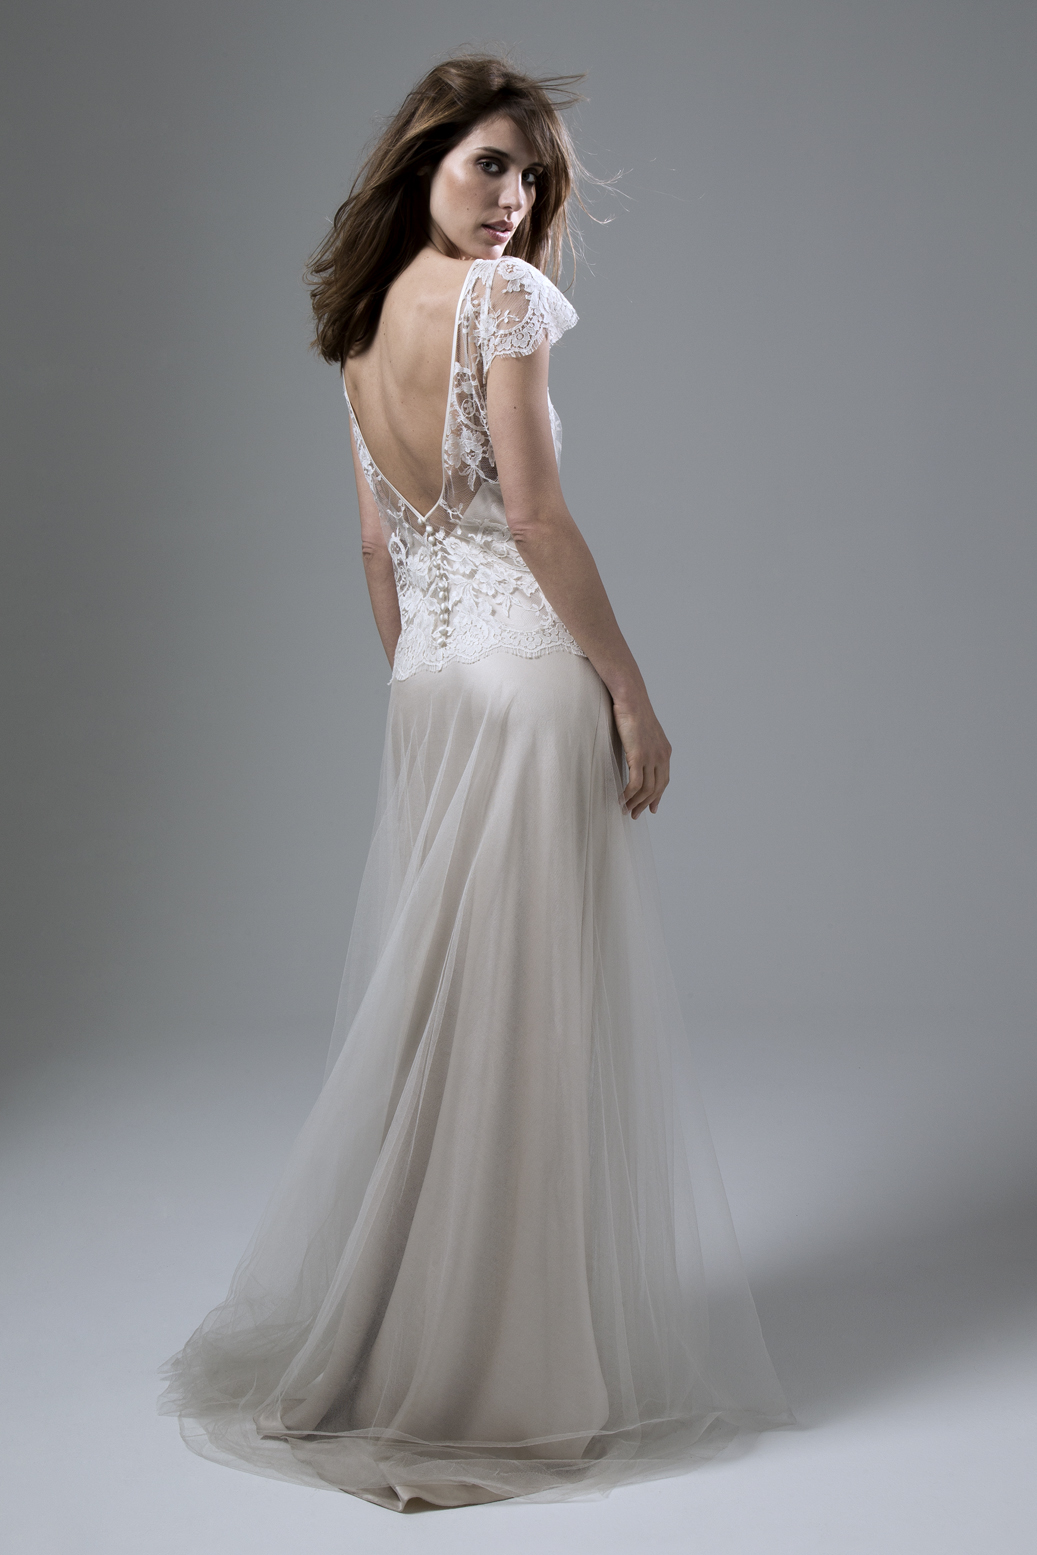 Back View of the Iris Classic Wedding Dress in French Lace and Silk Tulle with a Luxury Simple Blush or Ivory Slip by Halfpenny London